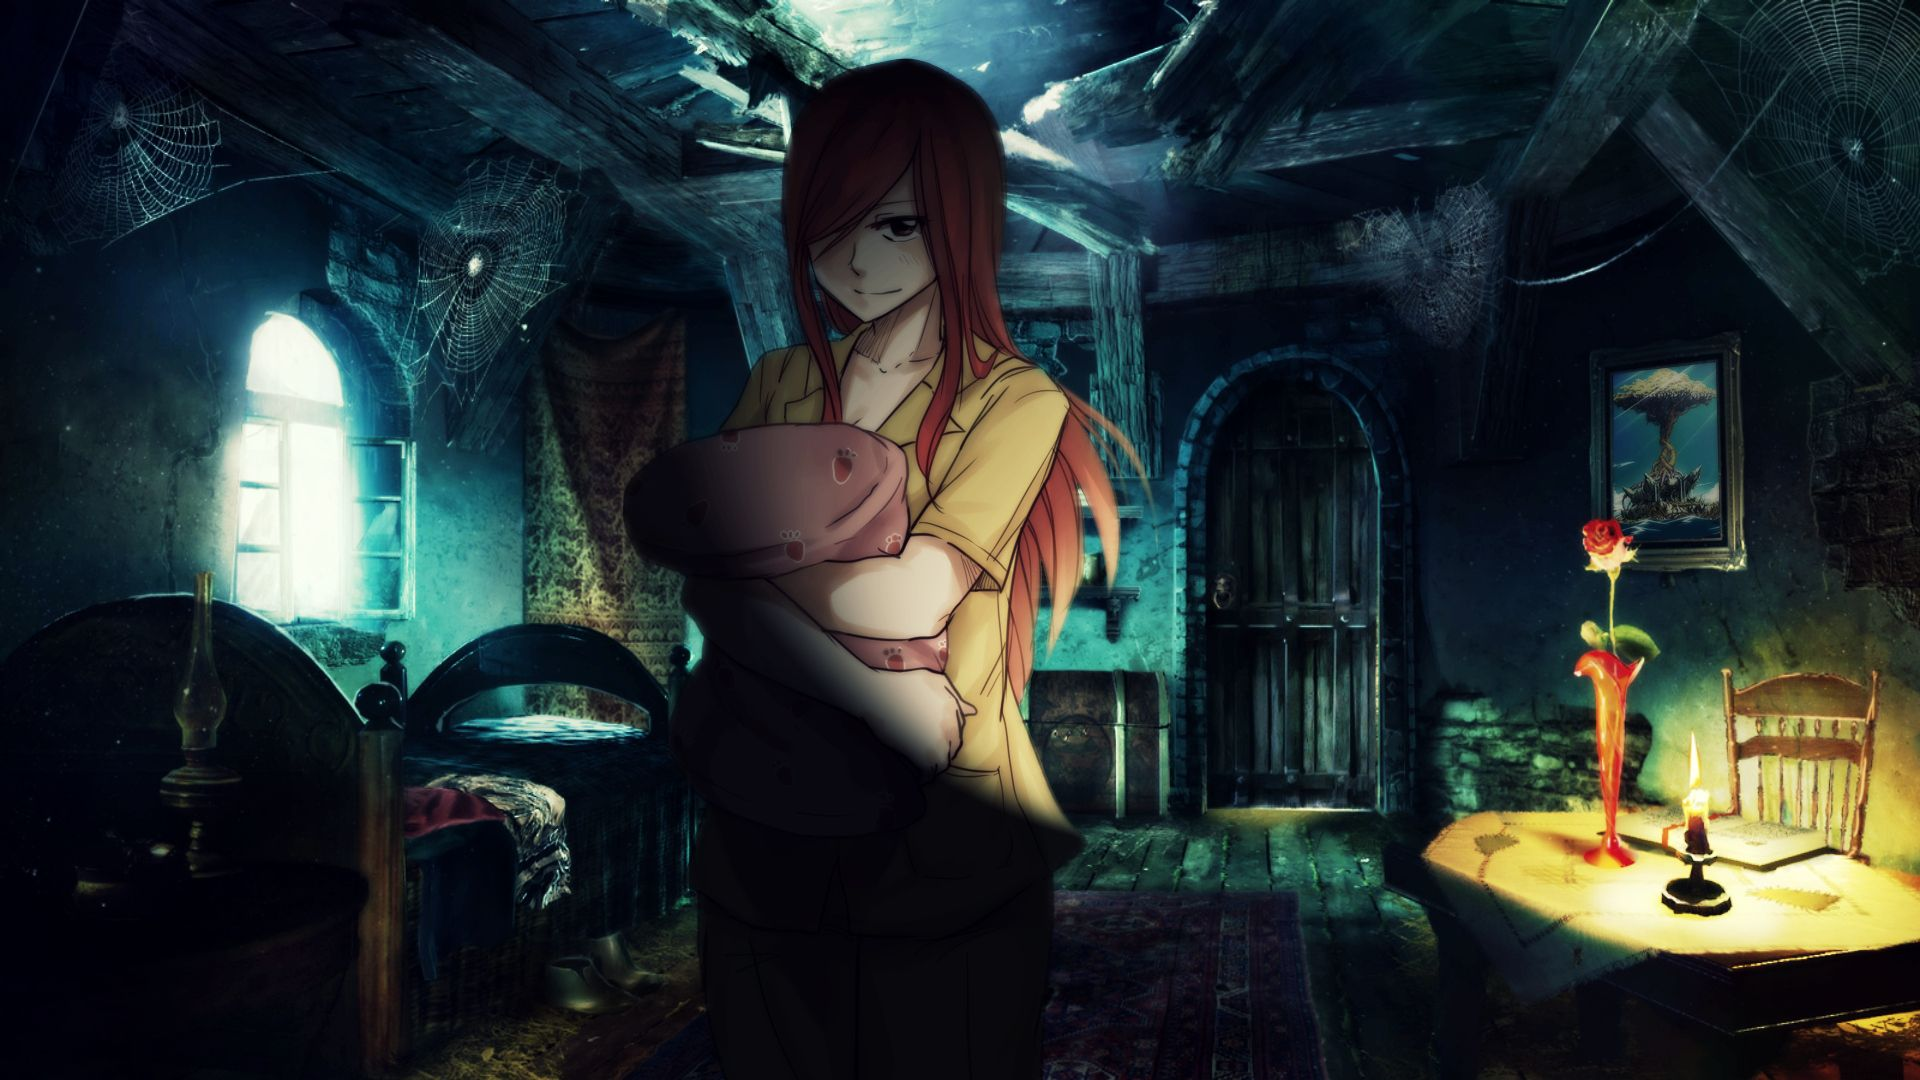 Erza Scarlet Fairy Tail Sad Anime Pinterest Anime